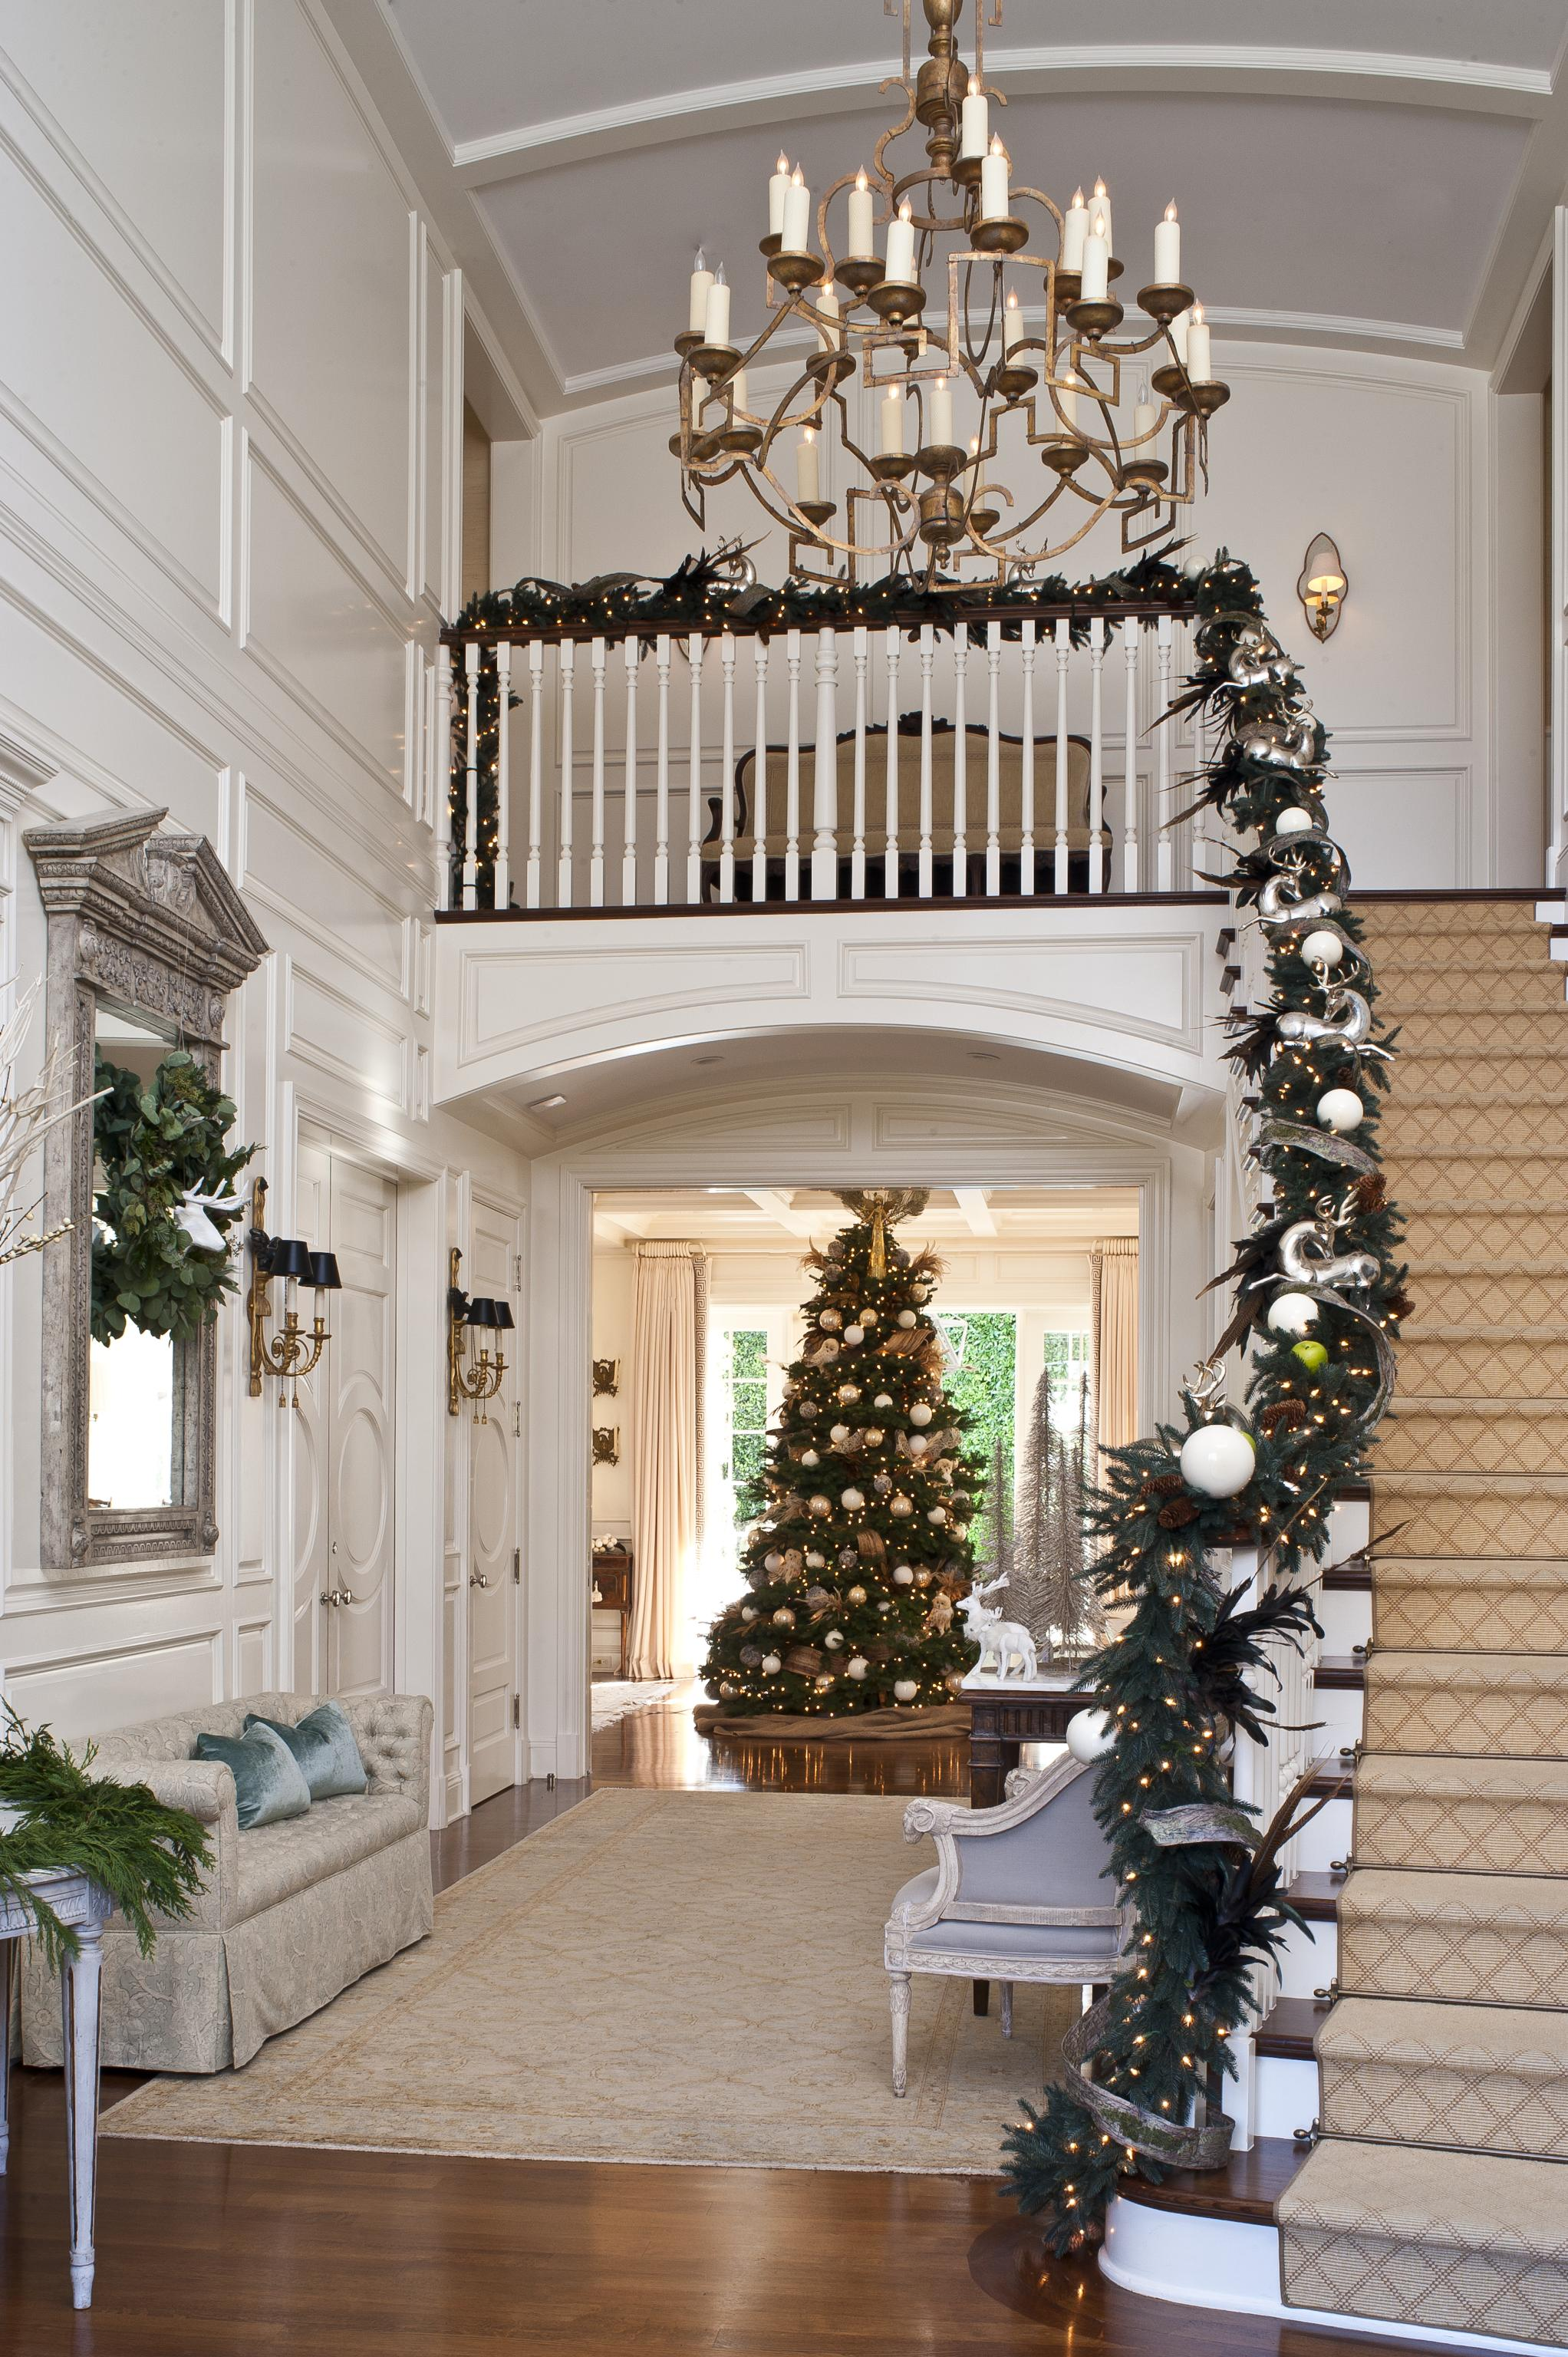 enlarge - Homes Decorated For Christmas On The Inside